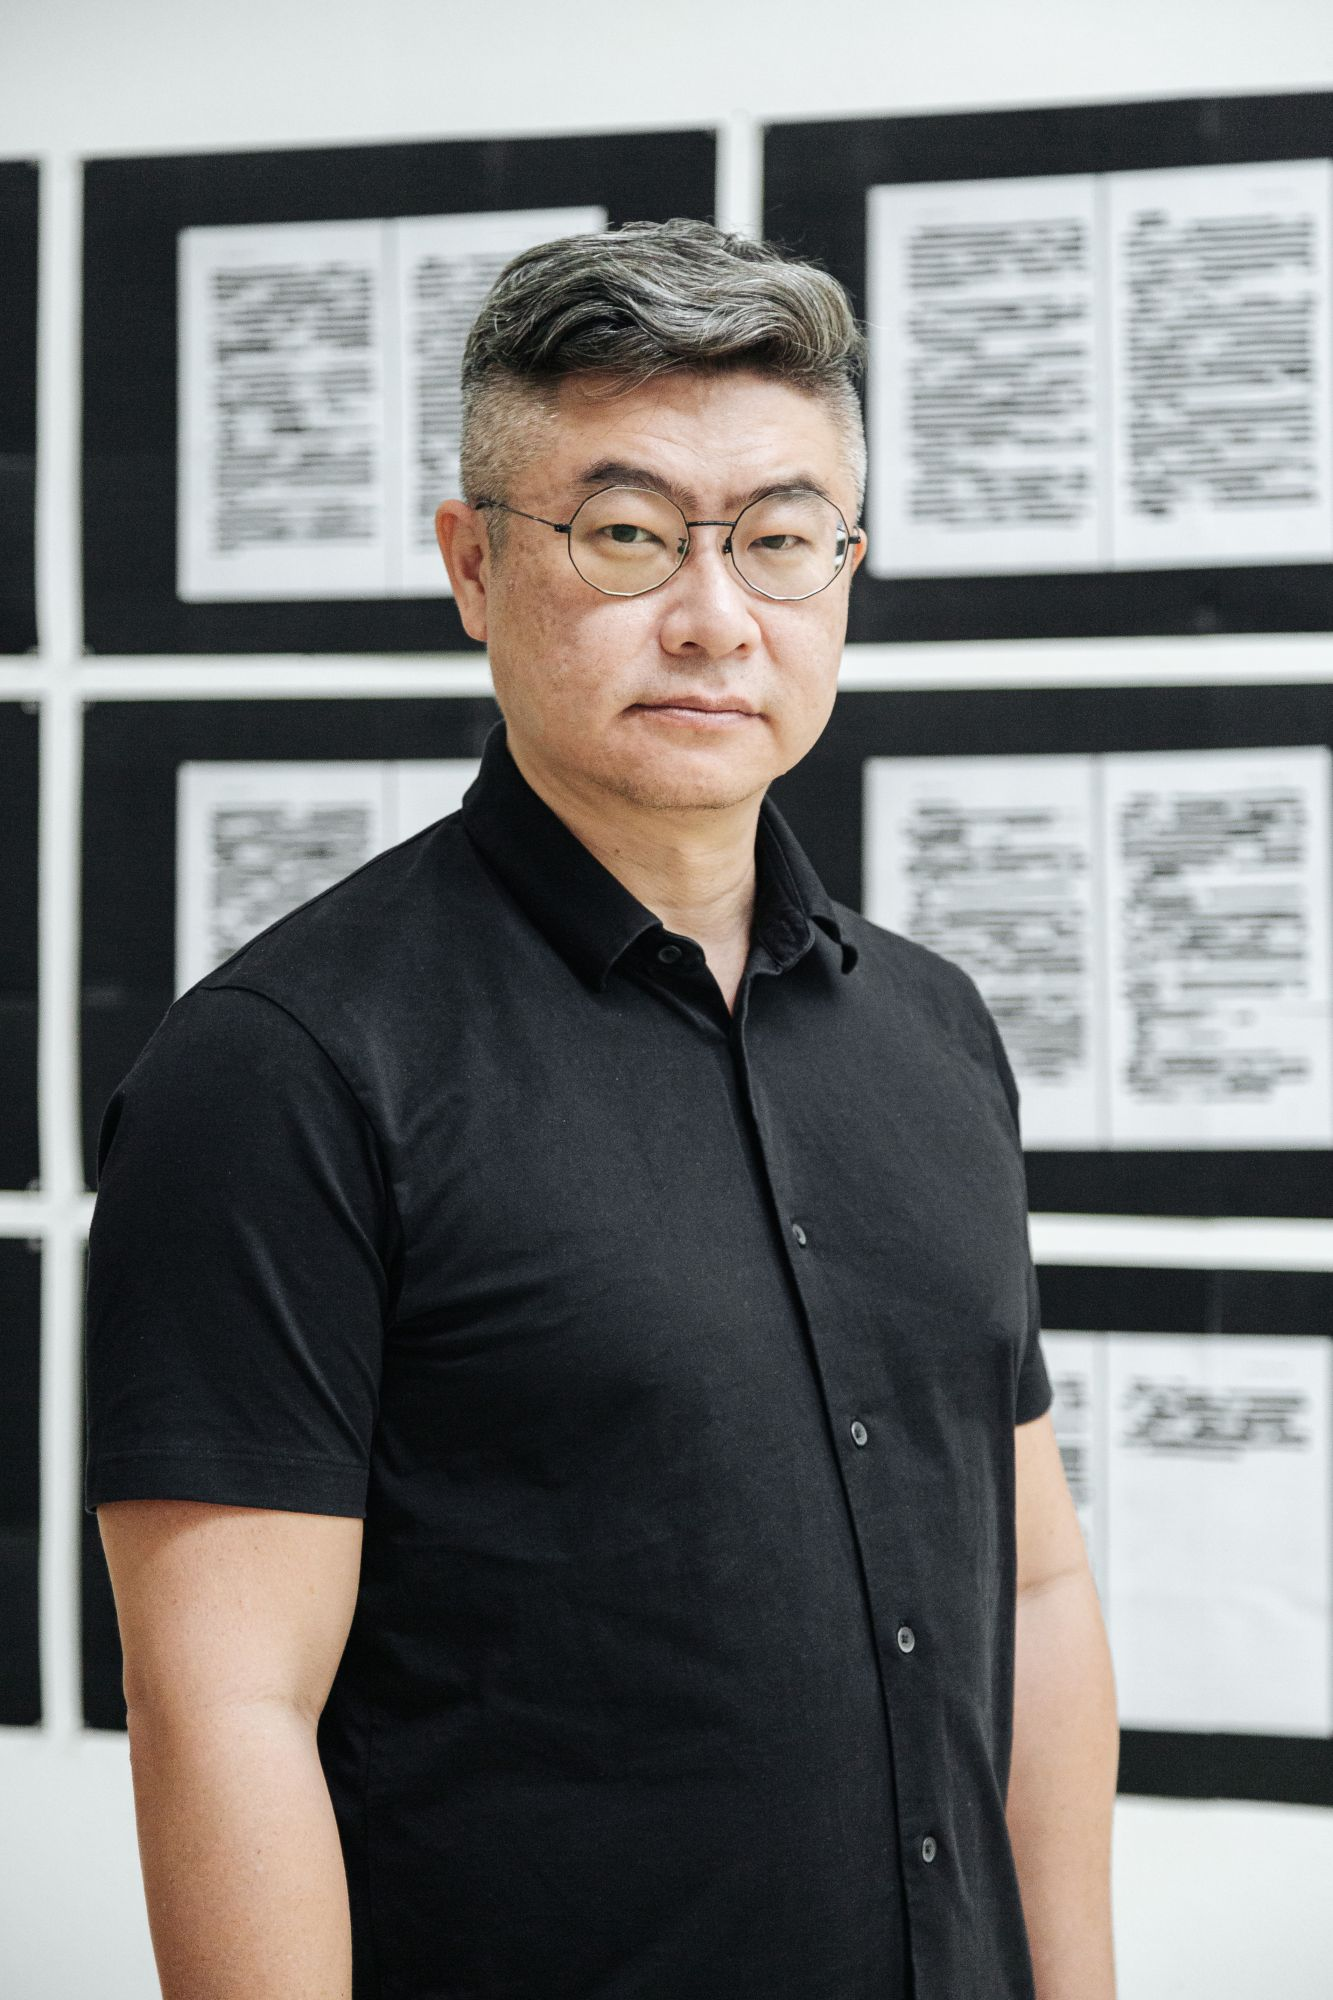 Singaporean Artist Heman Chong on His New Solo Exhibition at STPI Gallery